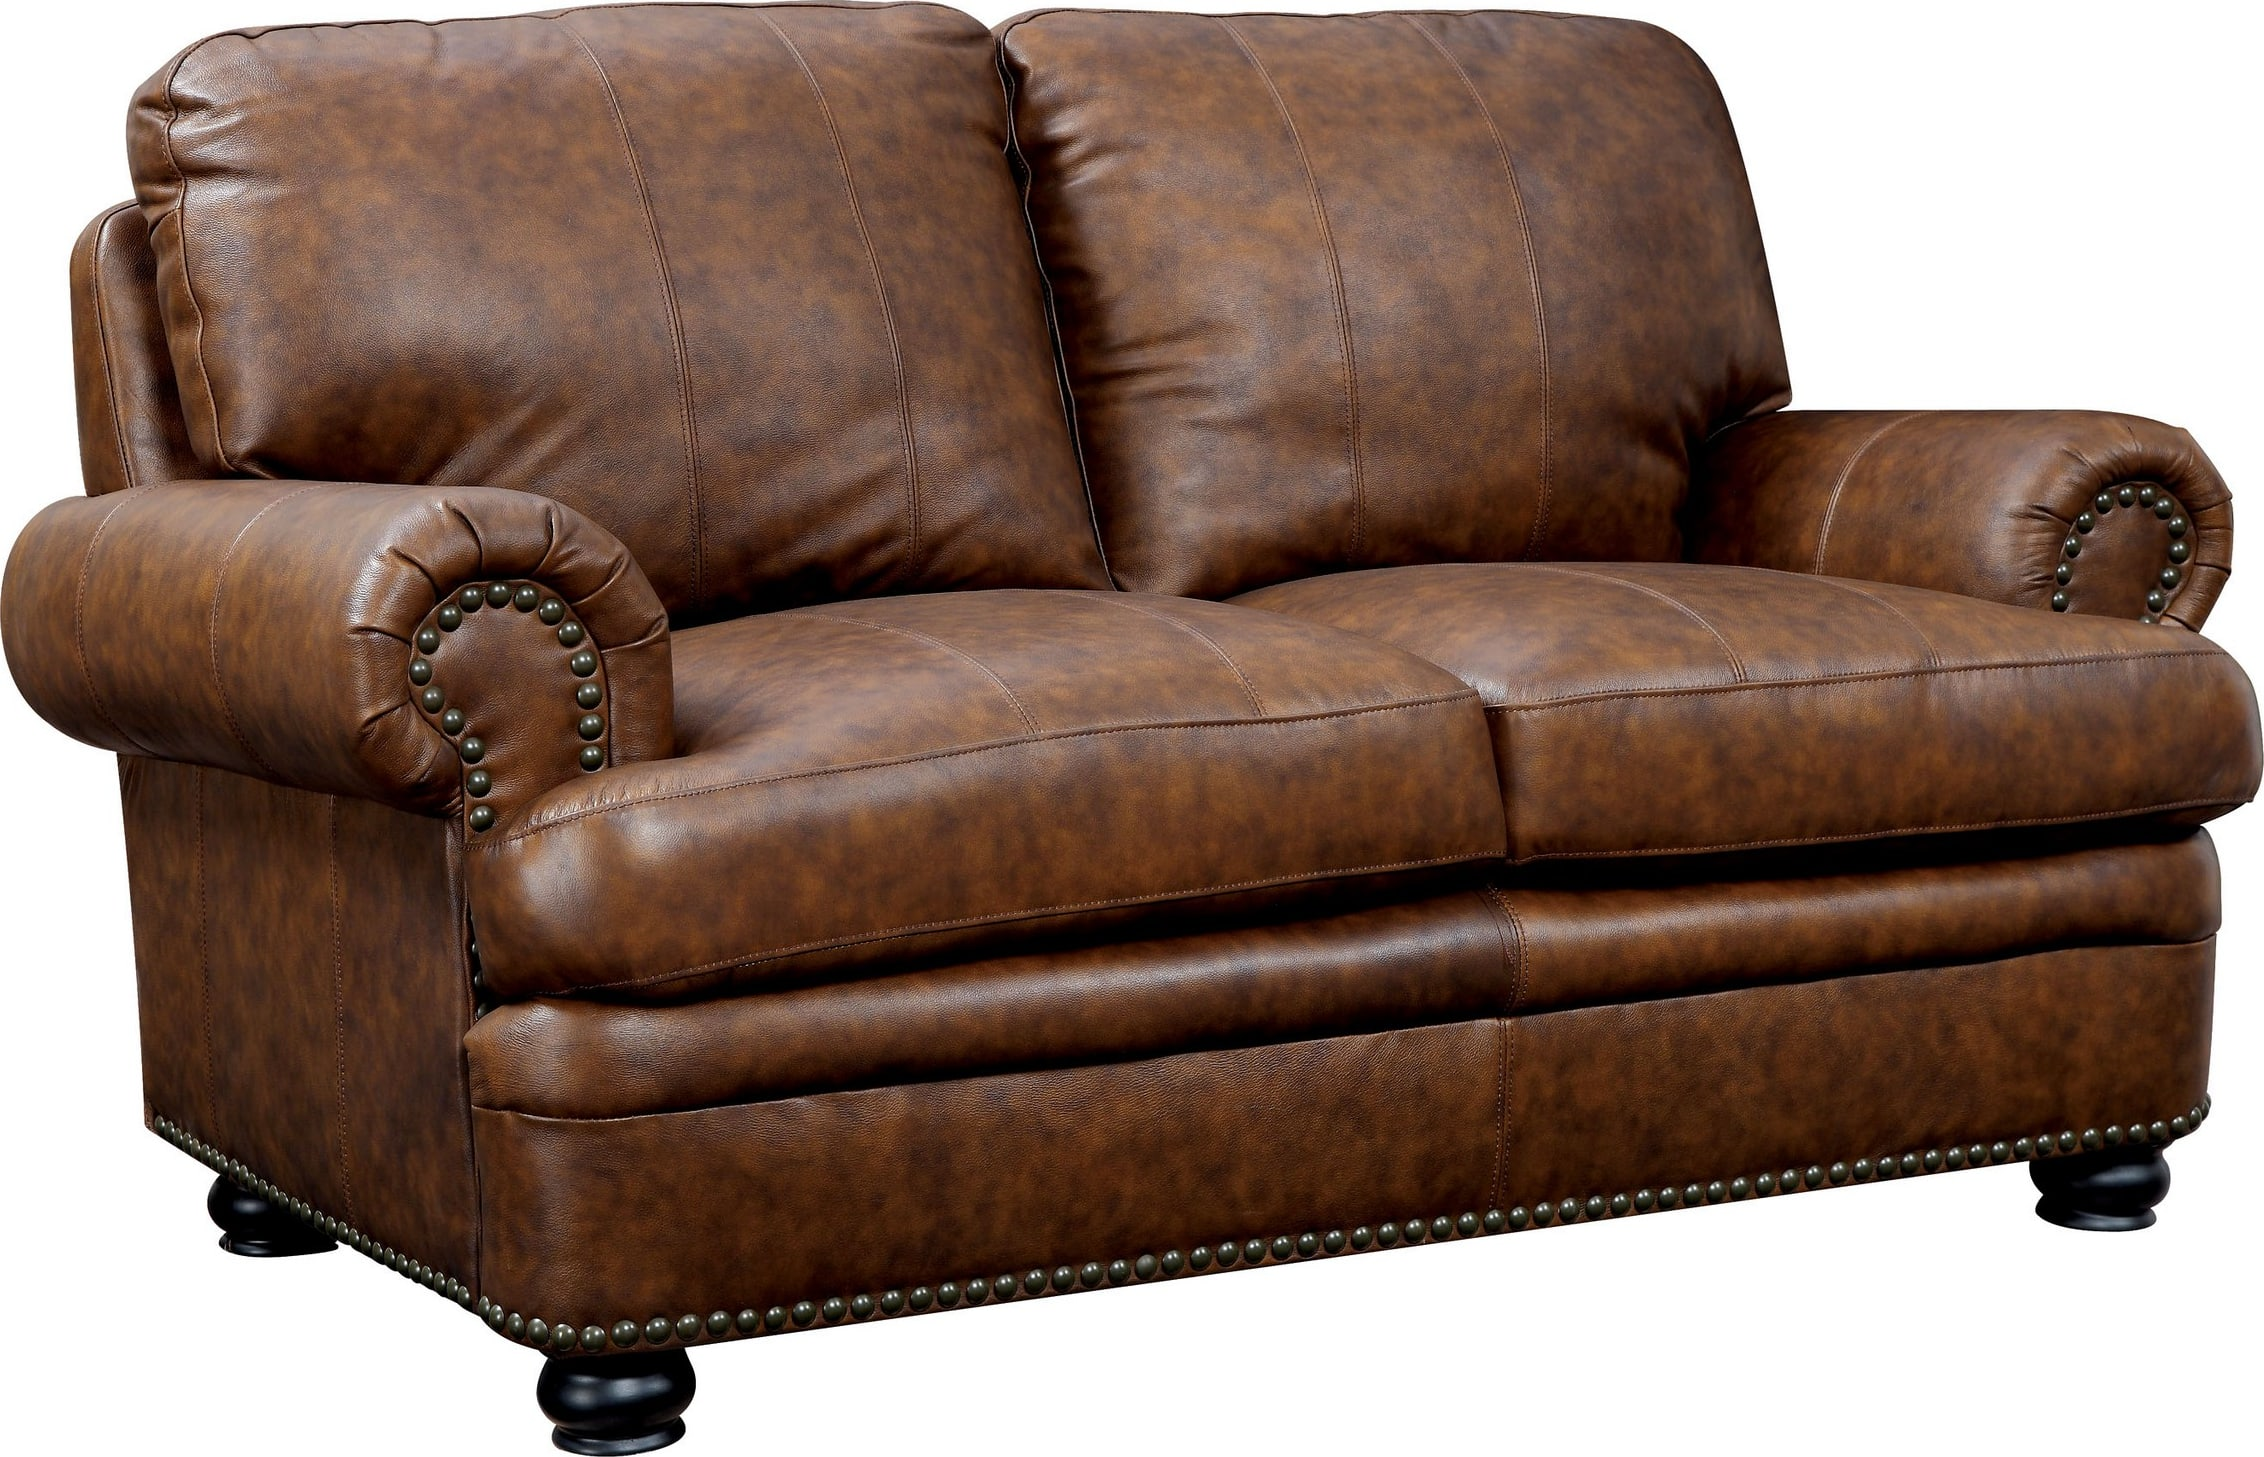 Furniture Of America Rheinhardt Dark Brown Leather Loveseat With 2 Pillows Idf 6318 Lv Goedekers Com